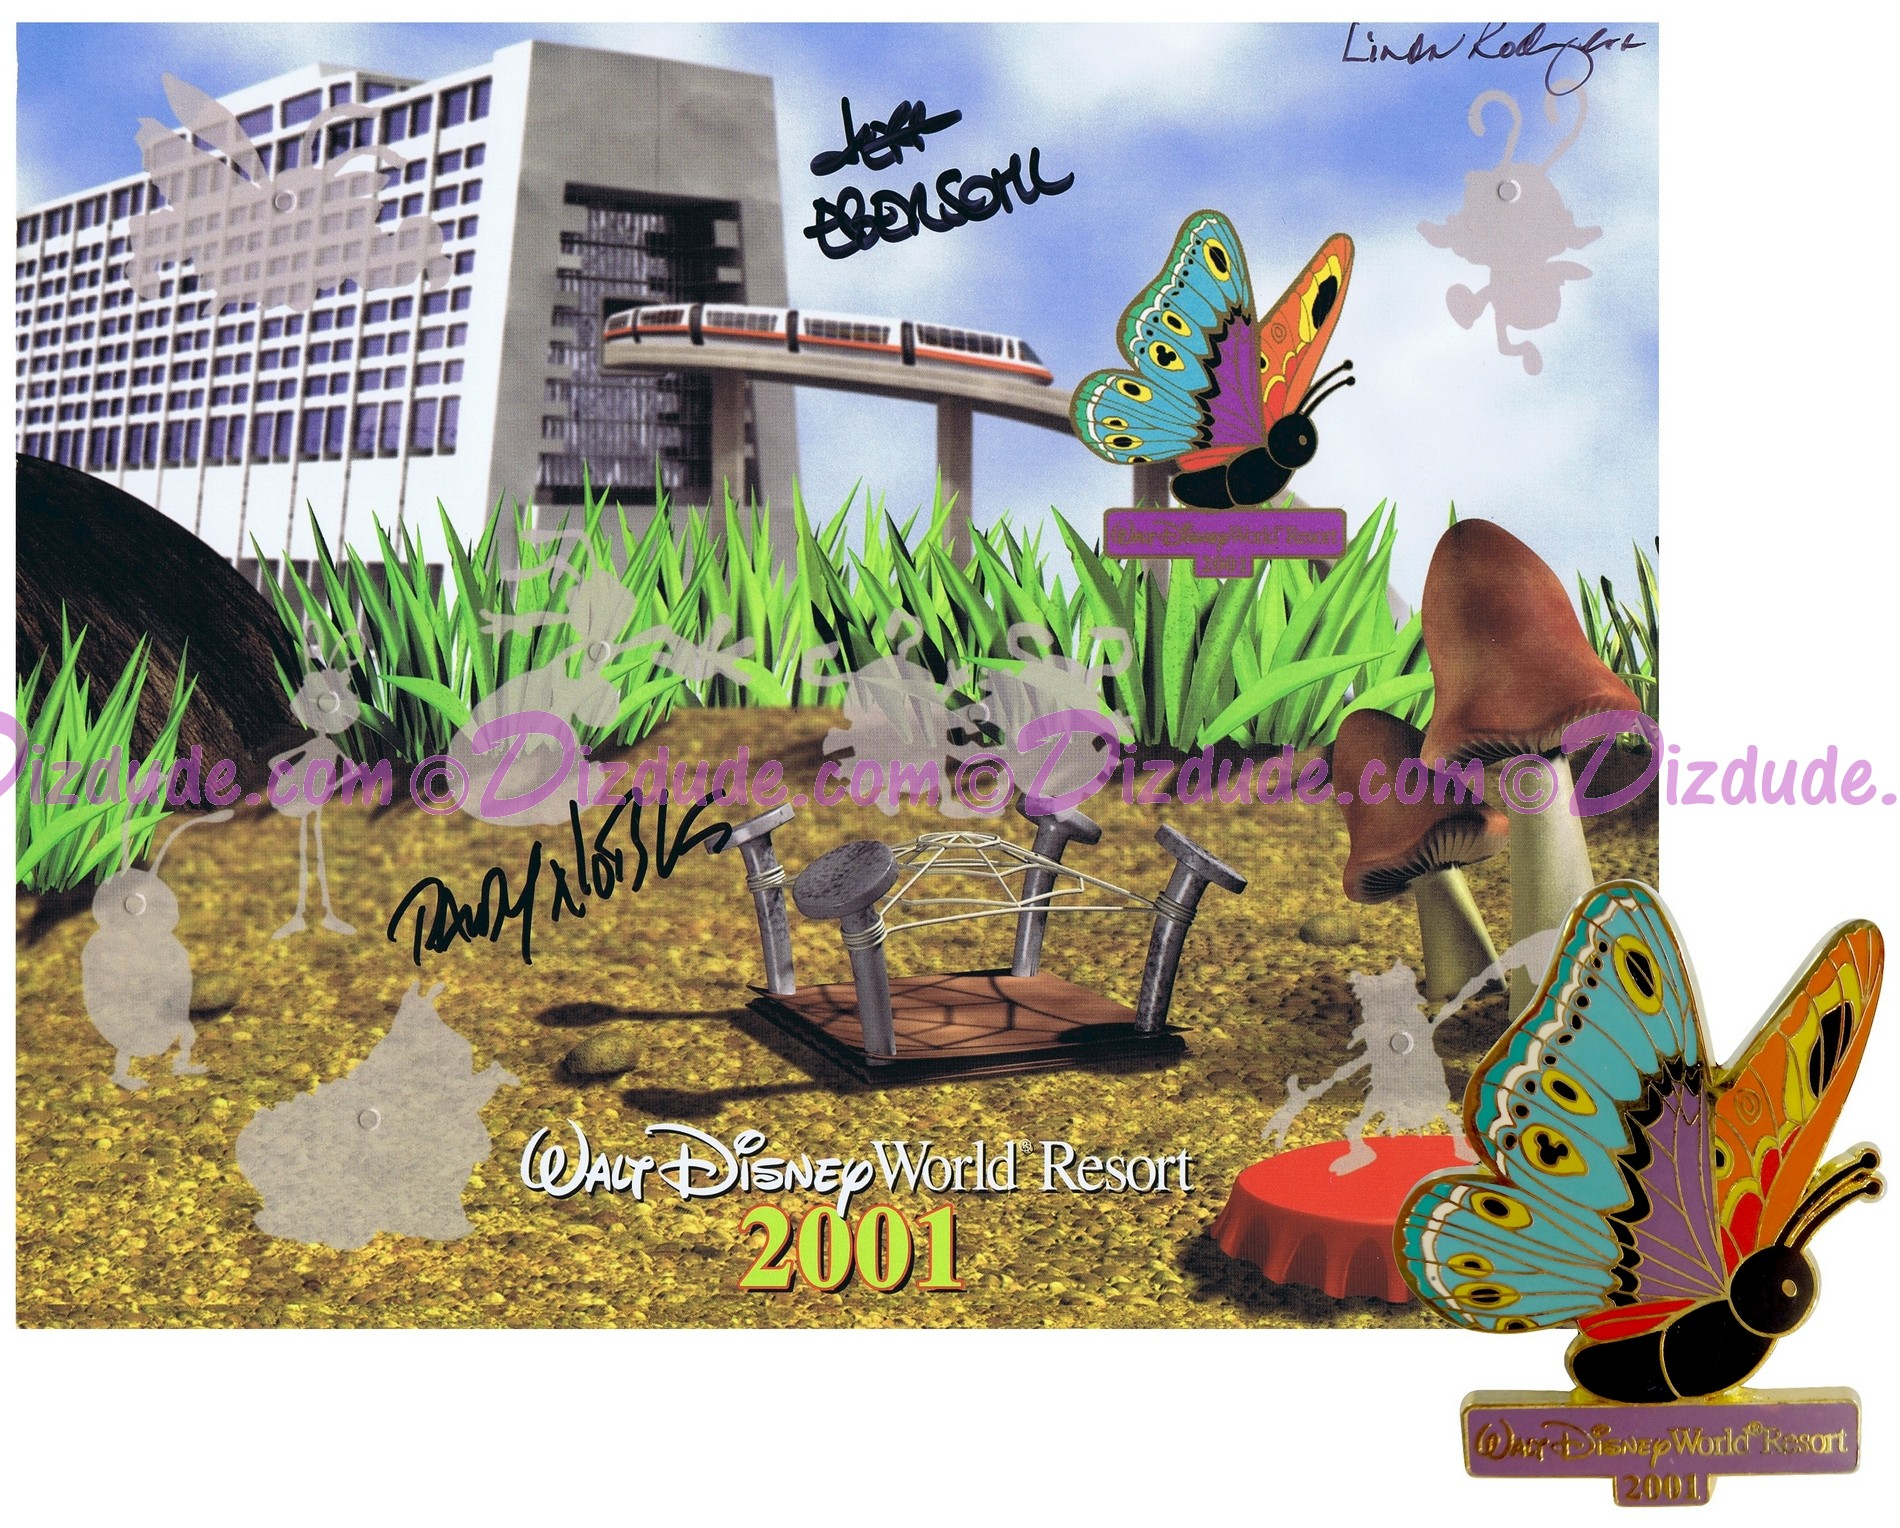 Autographed Walt Disney World Hunt for Pintopia Map Pin-Board 2001 with Contemporary Resort Butterfly Completer Pin Limited Edition 3000 © Dizdude.com